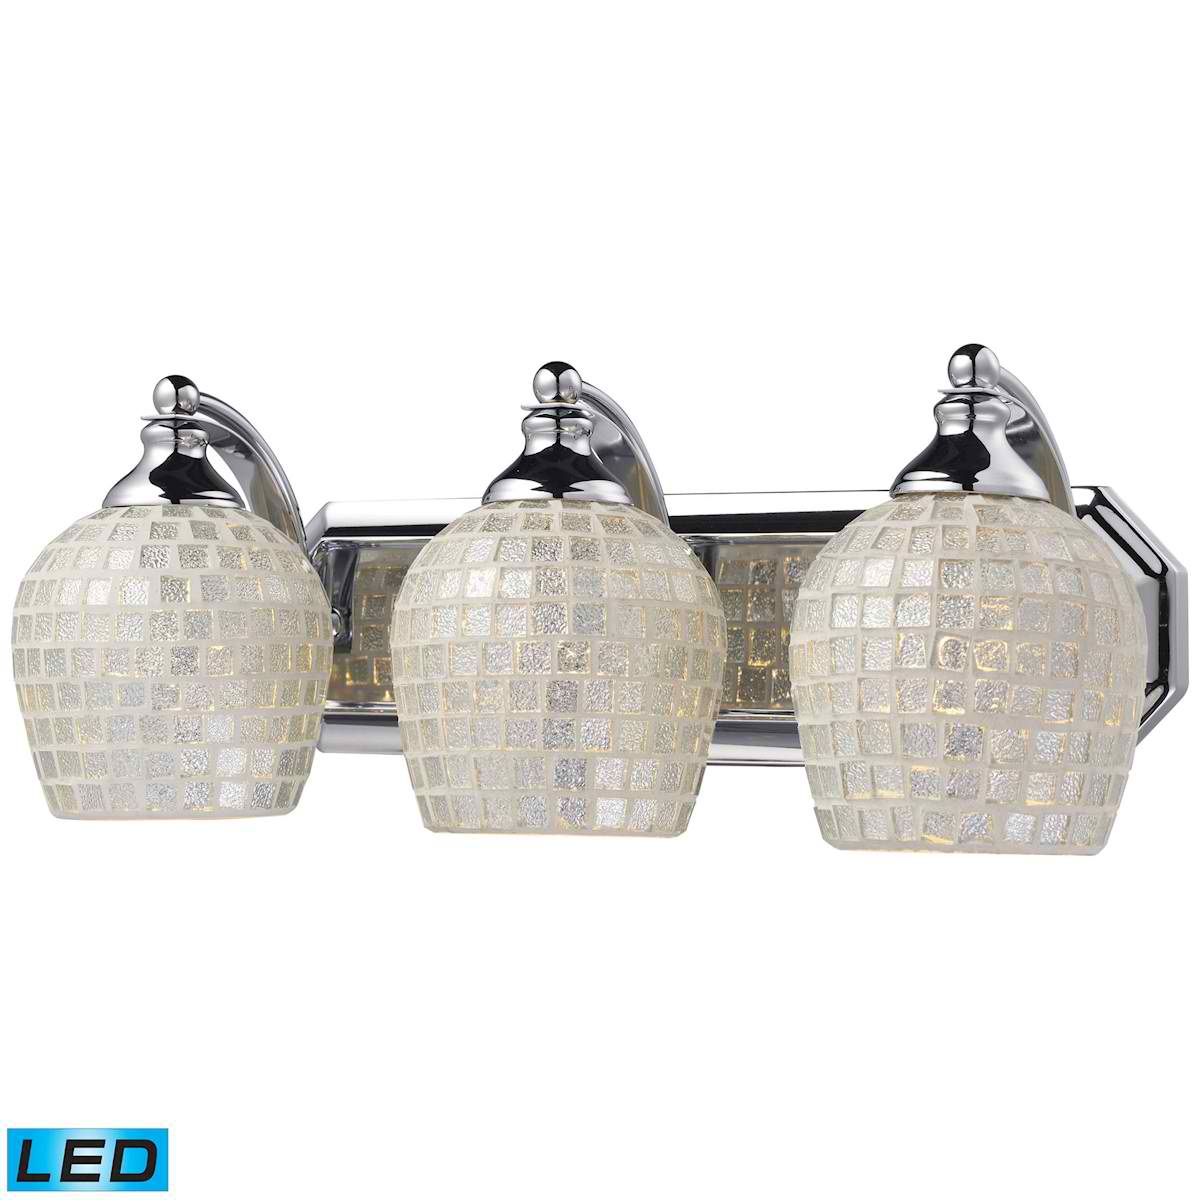 3 Light Vanity in Polished Chrome and Silver Mosaic Glass - LED, 800 Lumens (2400 Lumens Total) With Full Scale